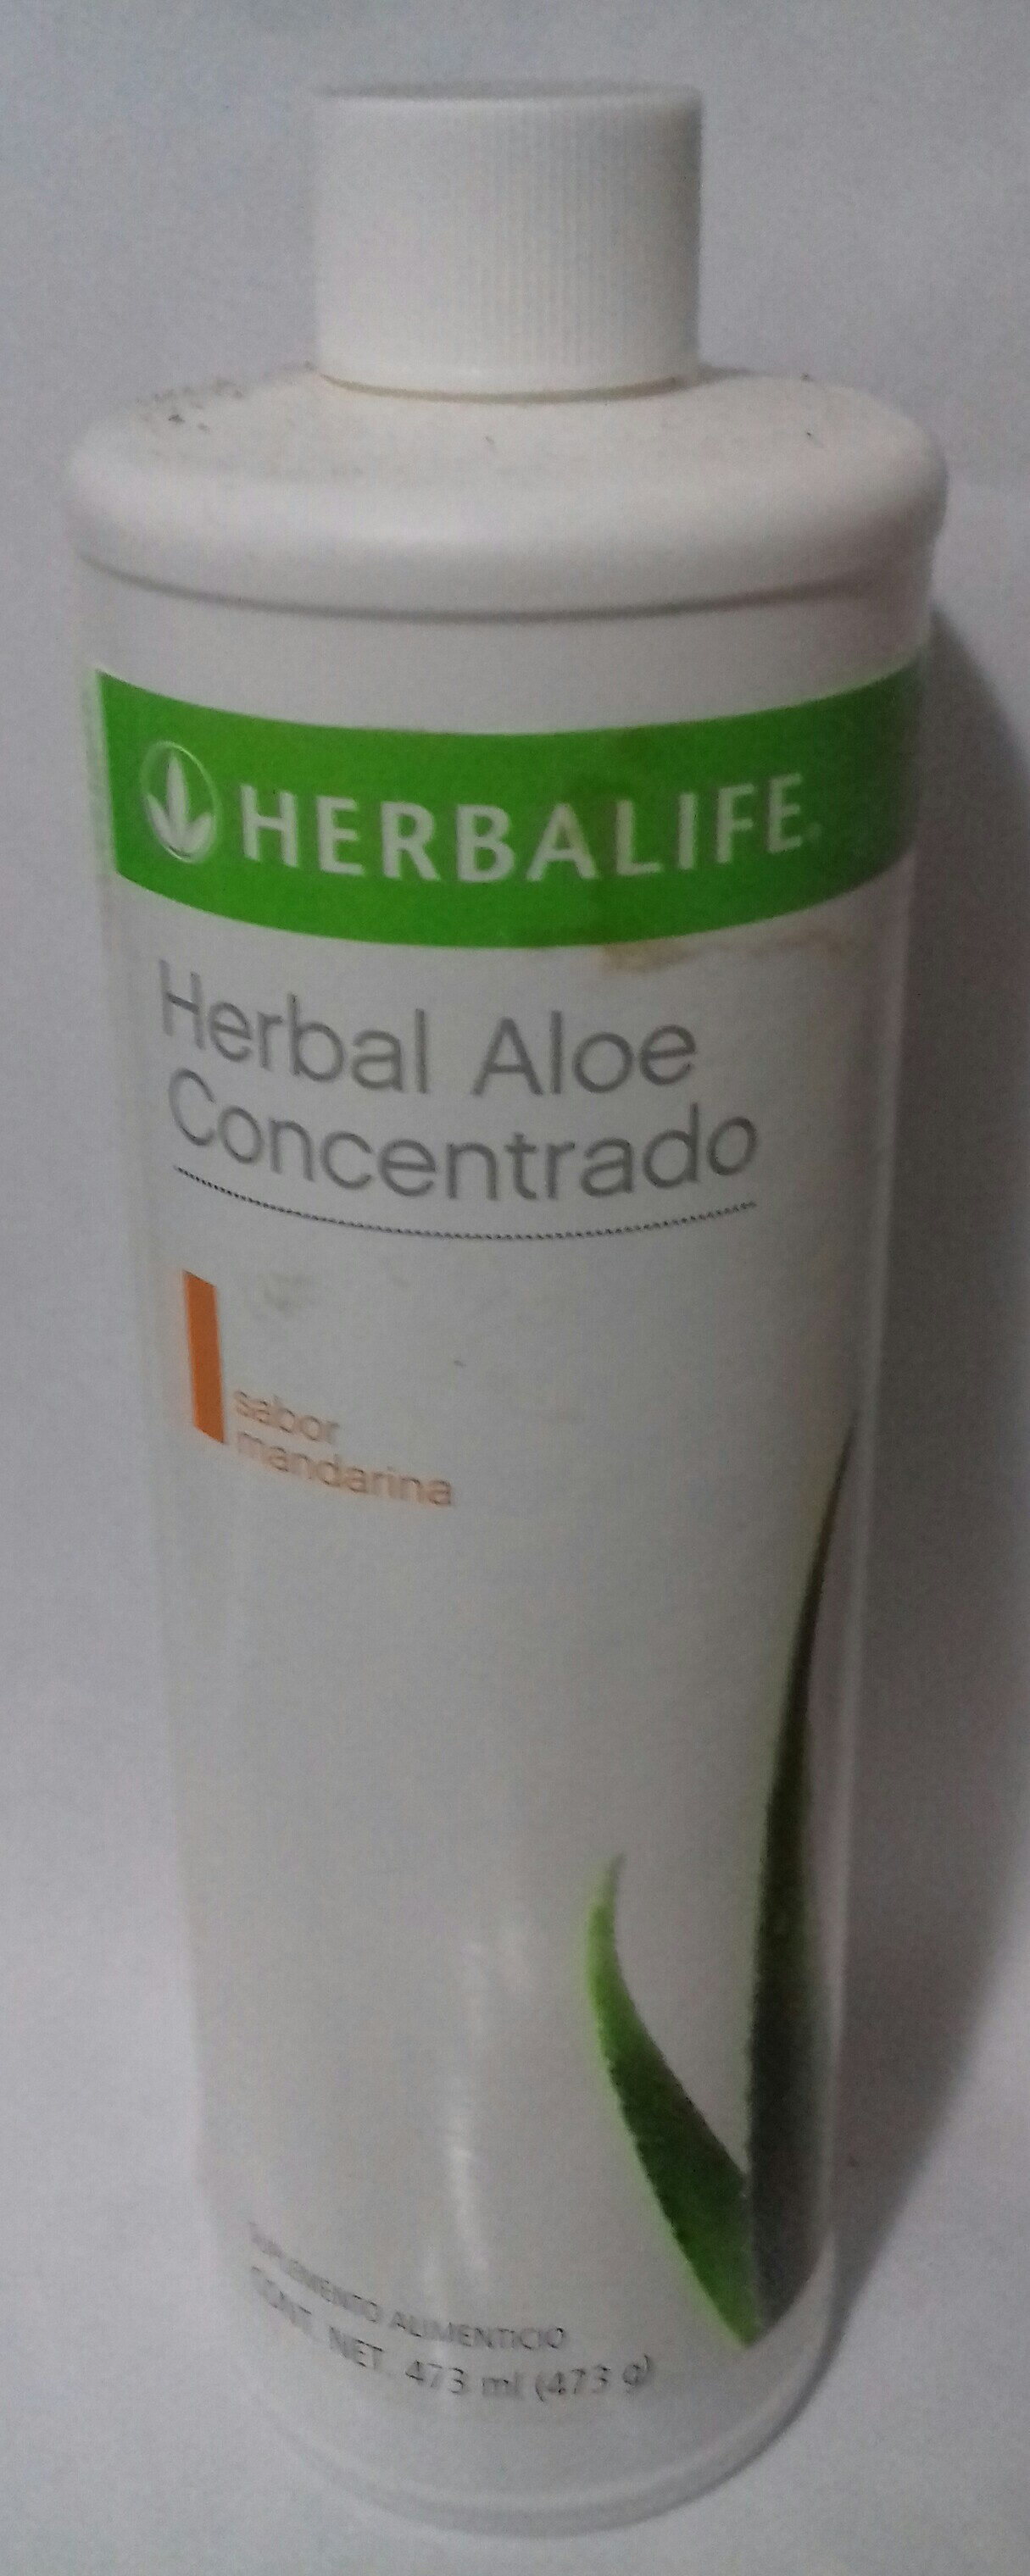 Herbal Aloe Concentrado - Product - es